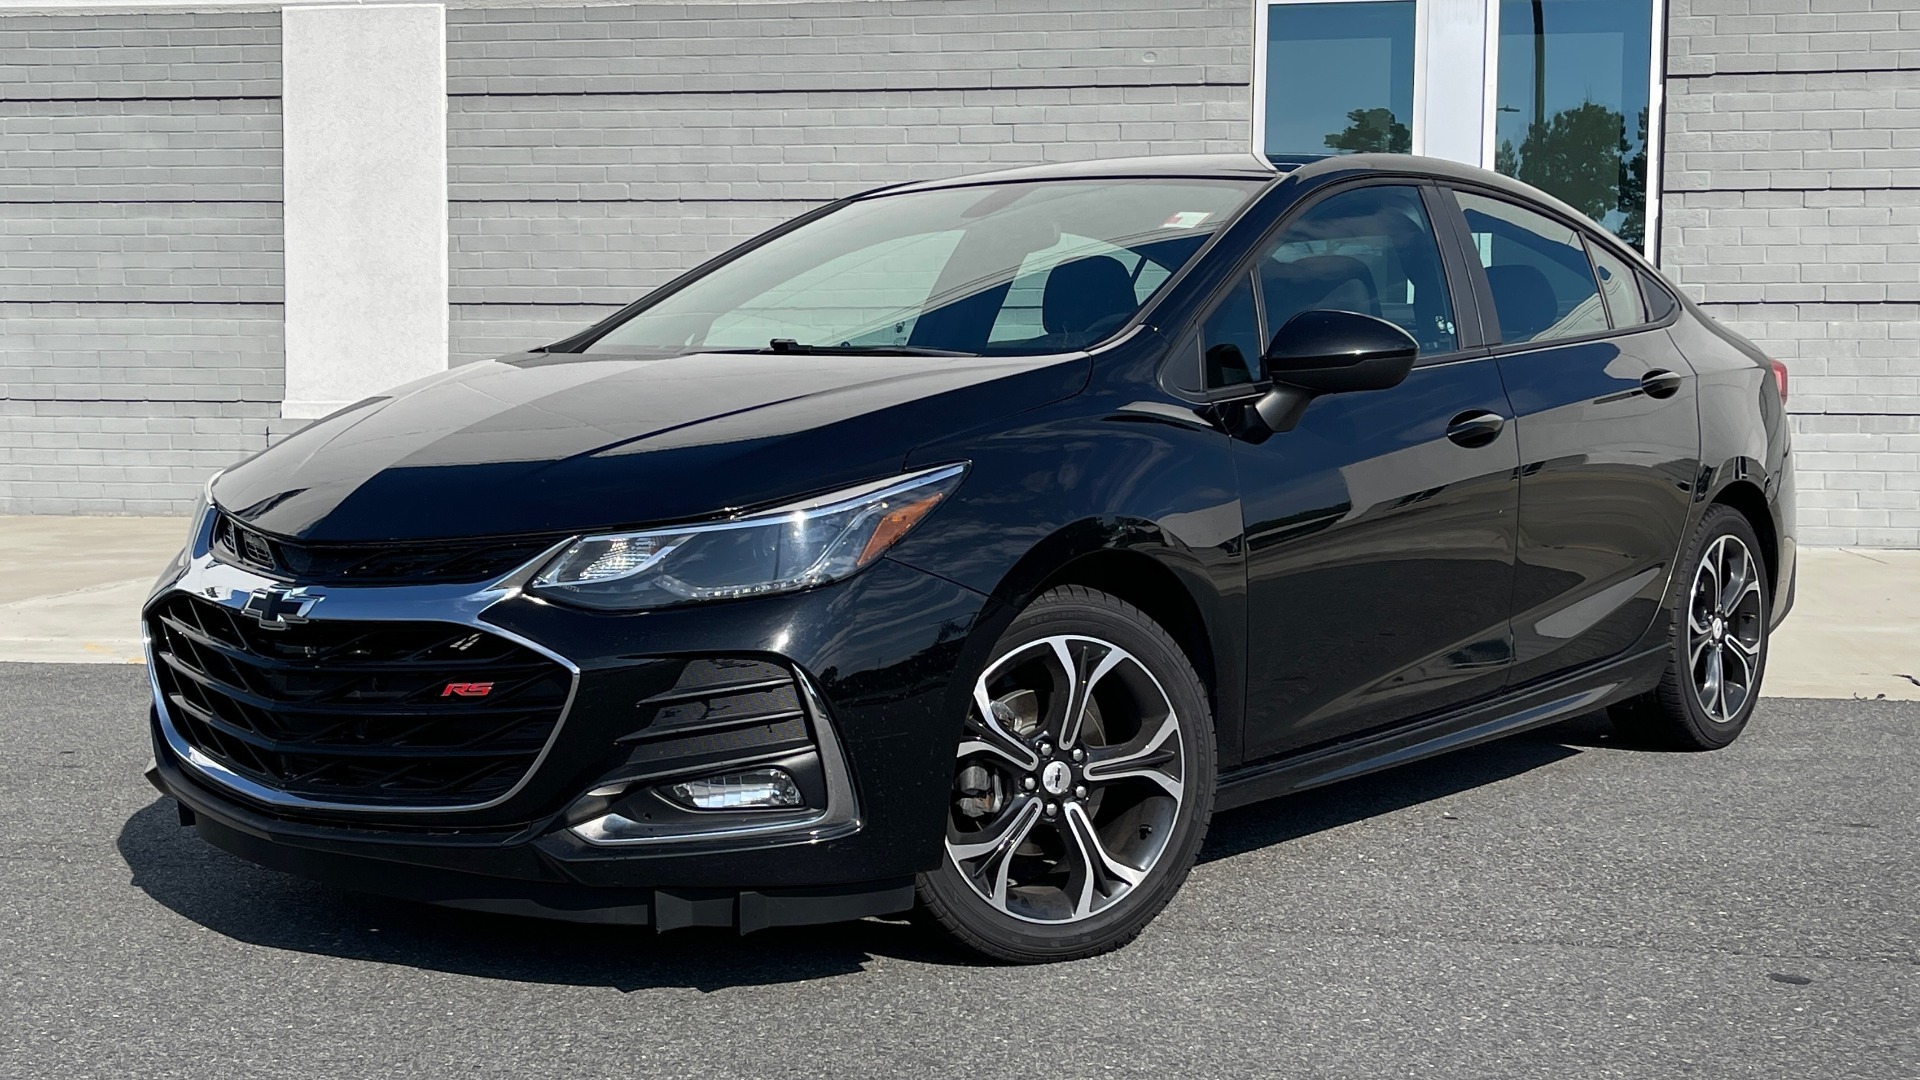 Used 2019 Chevrolet CRUZE LT / 1.4L TURBO / 6-SPD AUTO / AIR CONDITIONING / REARVIEW for sale $18,495 at Formula Imports in Charlotte NC 28227 1